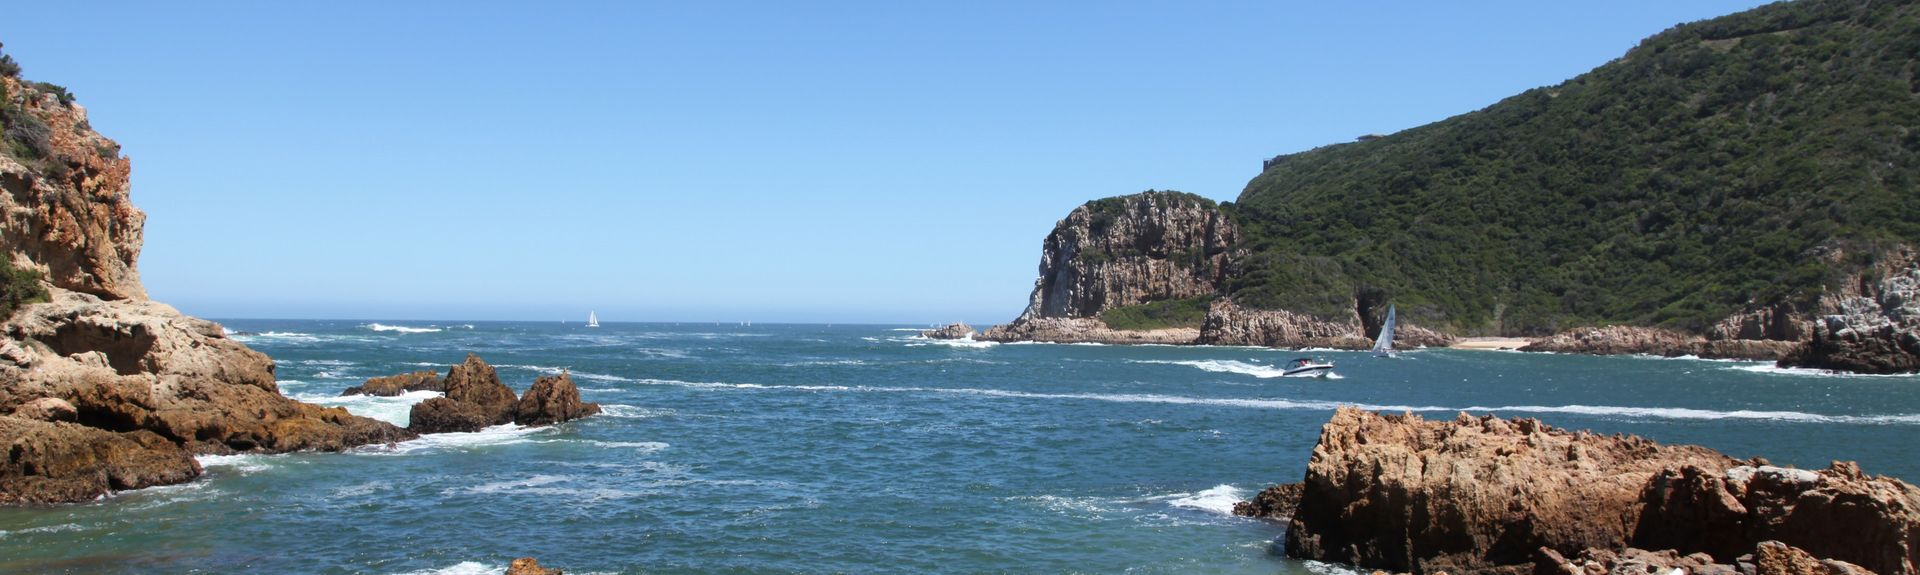 Mossel Bay, Western Cape (province), South Africa